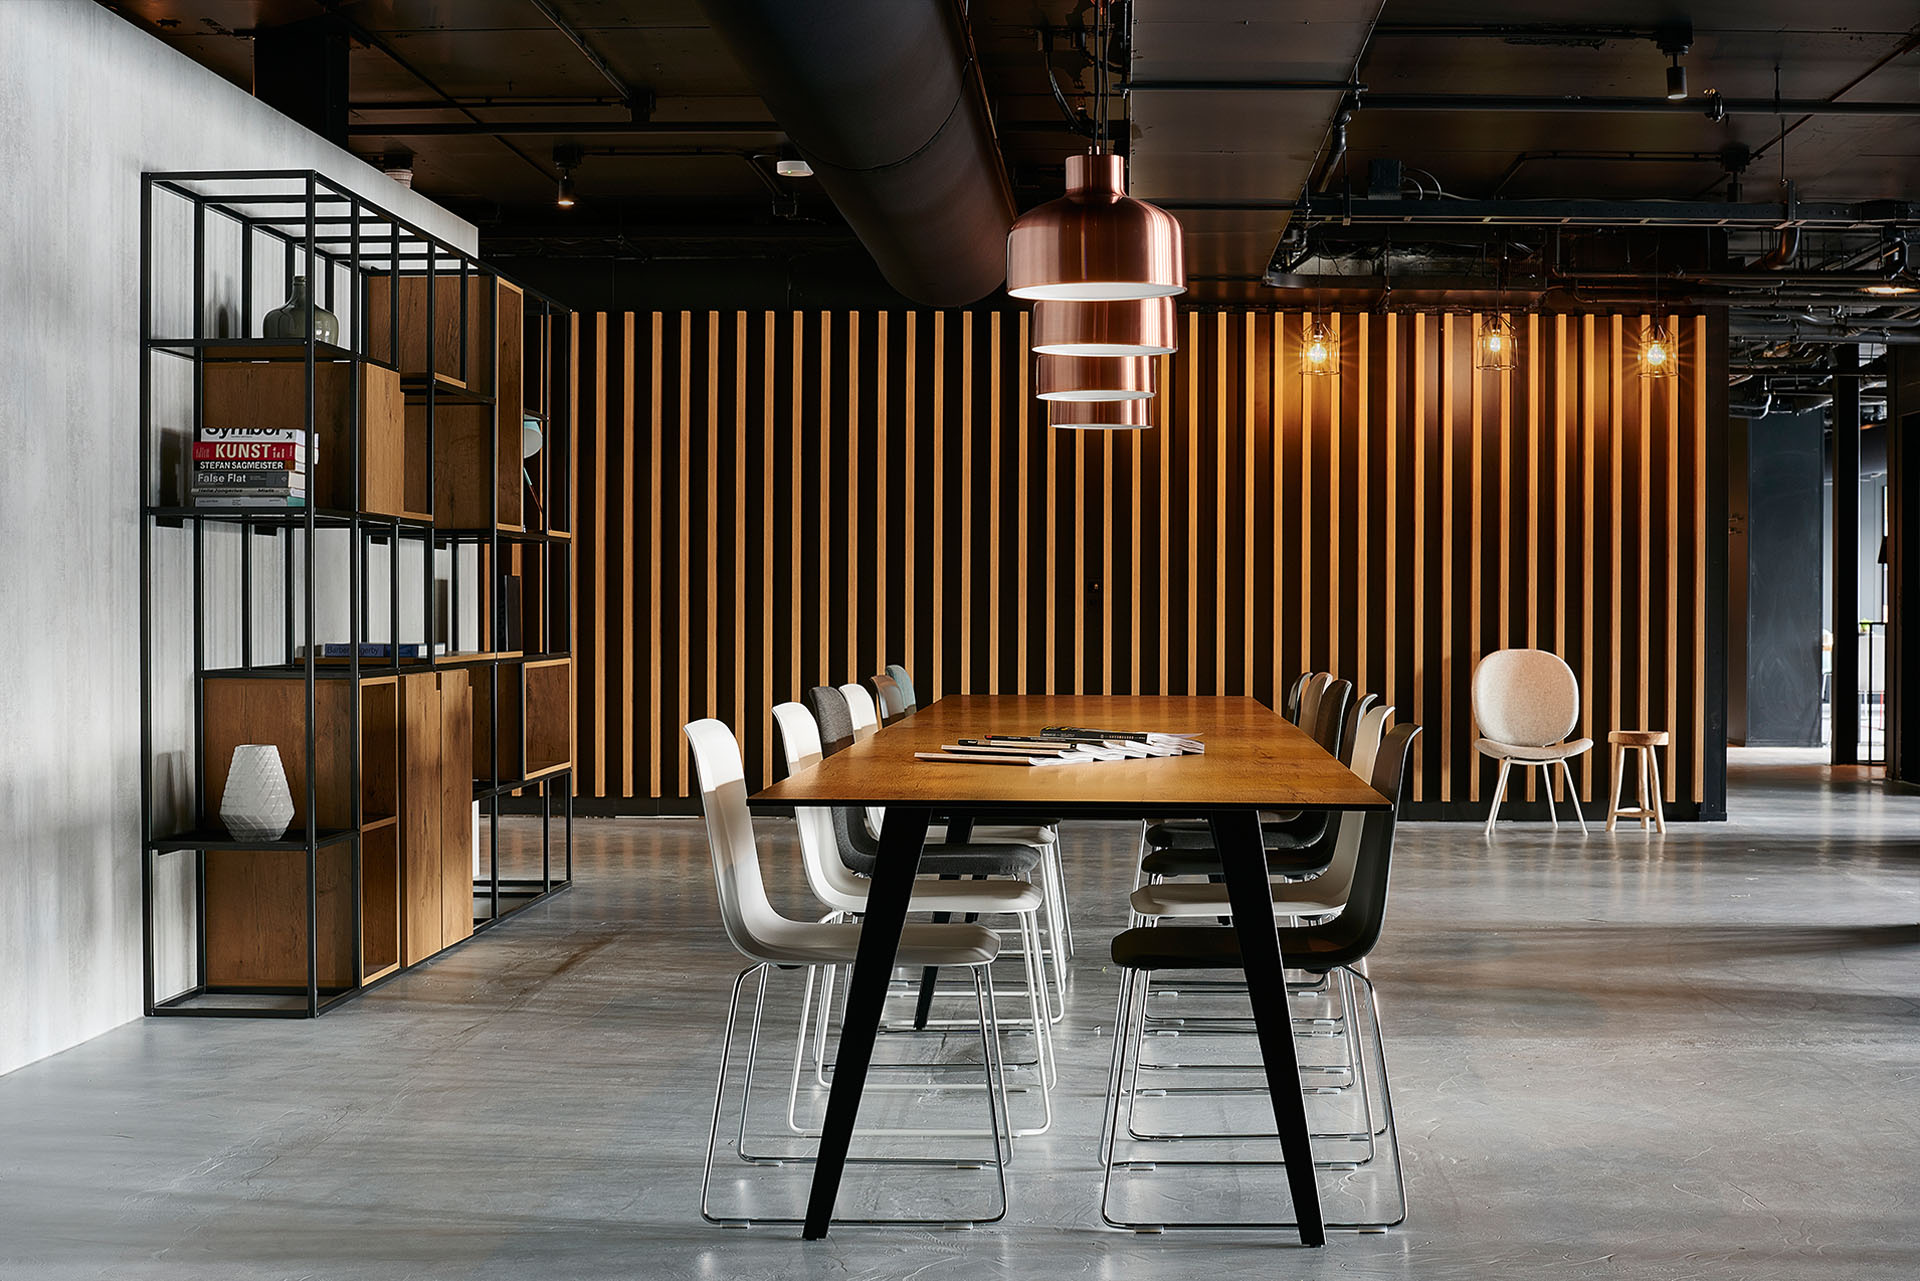 Reading table / We were looking for the right blend of industrial and natural. Showing the construction and sturdiness of the building and combining it with elements, materials and textures that make you feel right at home.